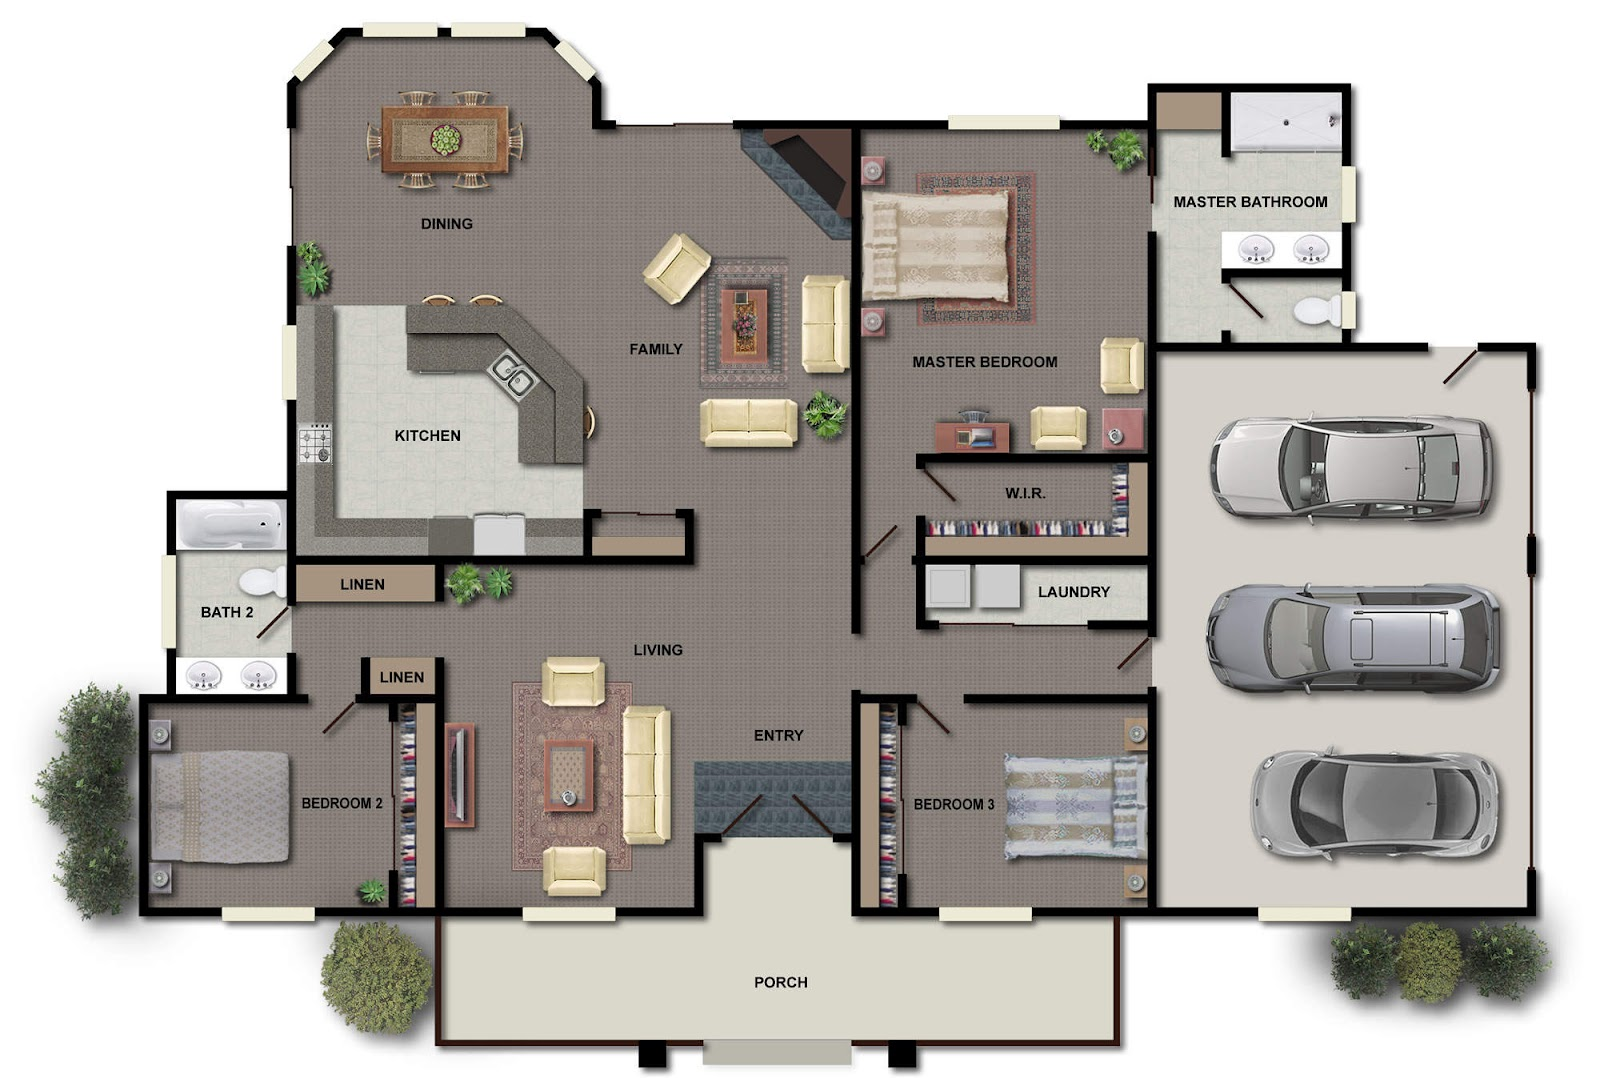 House floor plans of this modern style would look if you can create